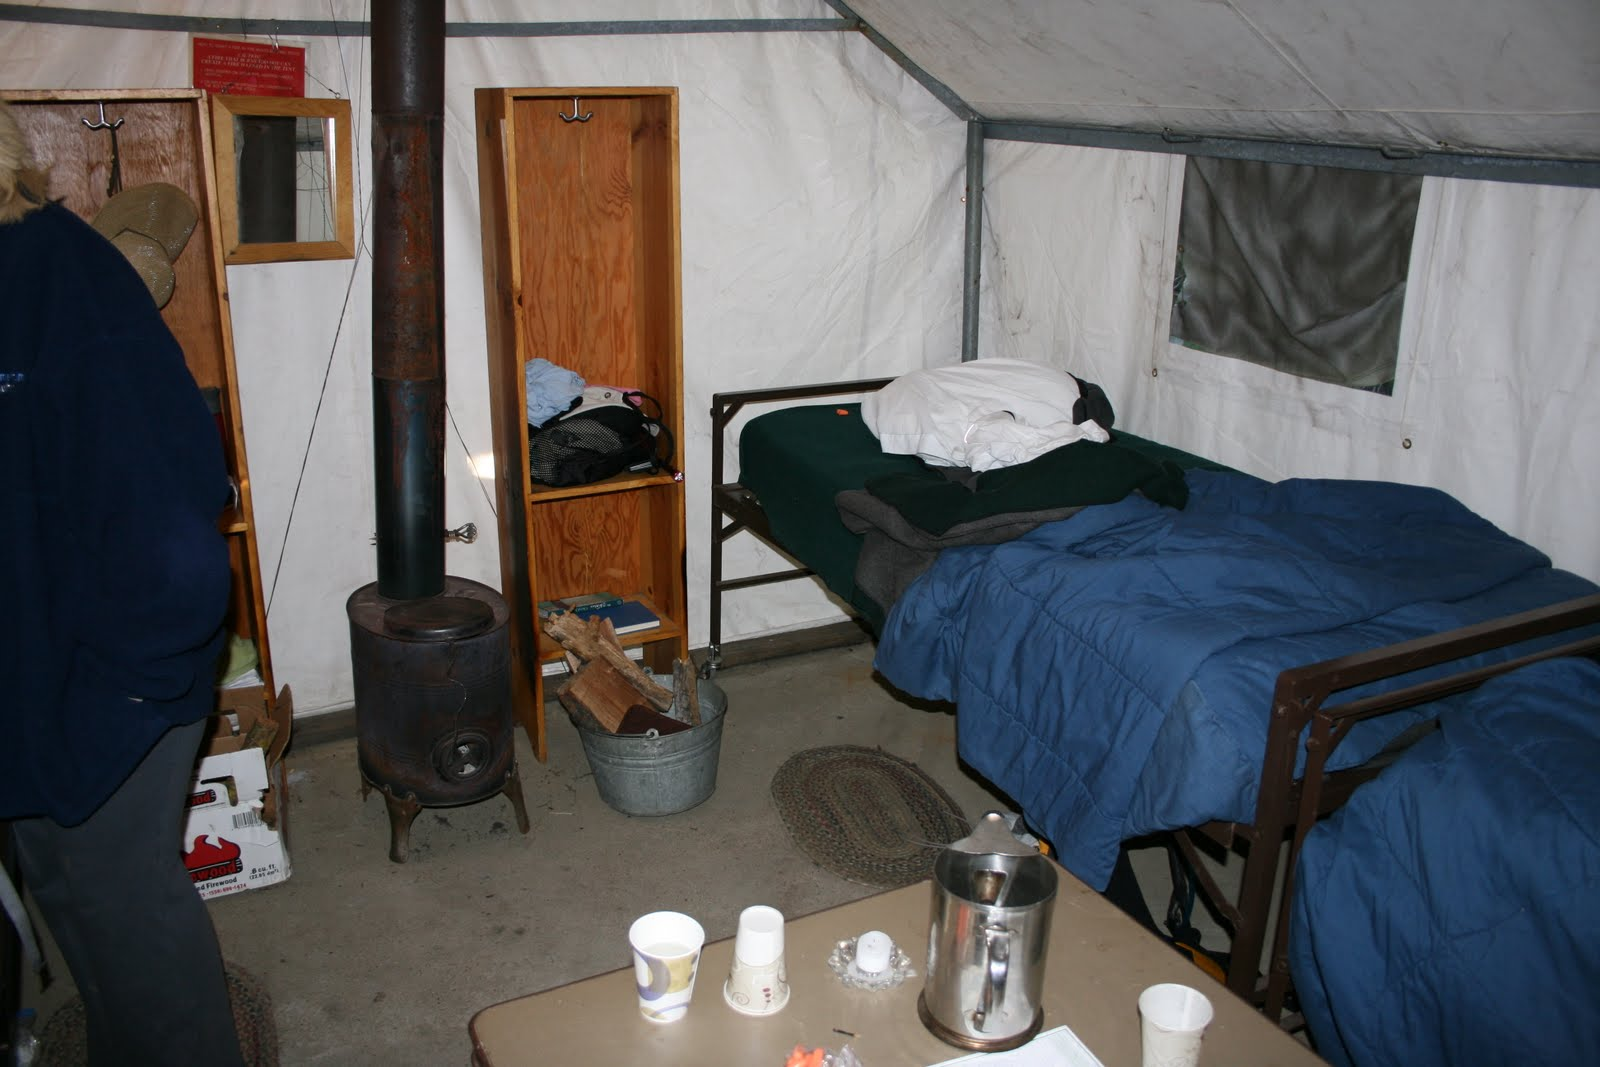 Typical setup inside 4 person tent cabin & Yosemite High Sierra Camping Trip Blog